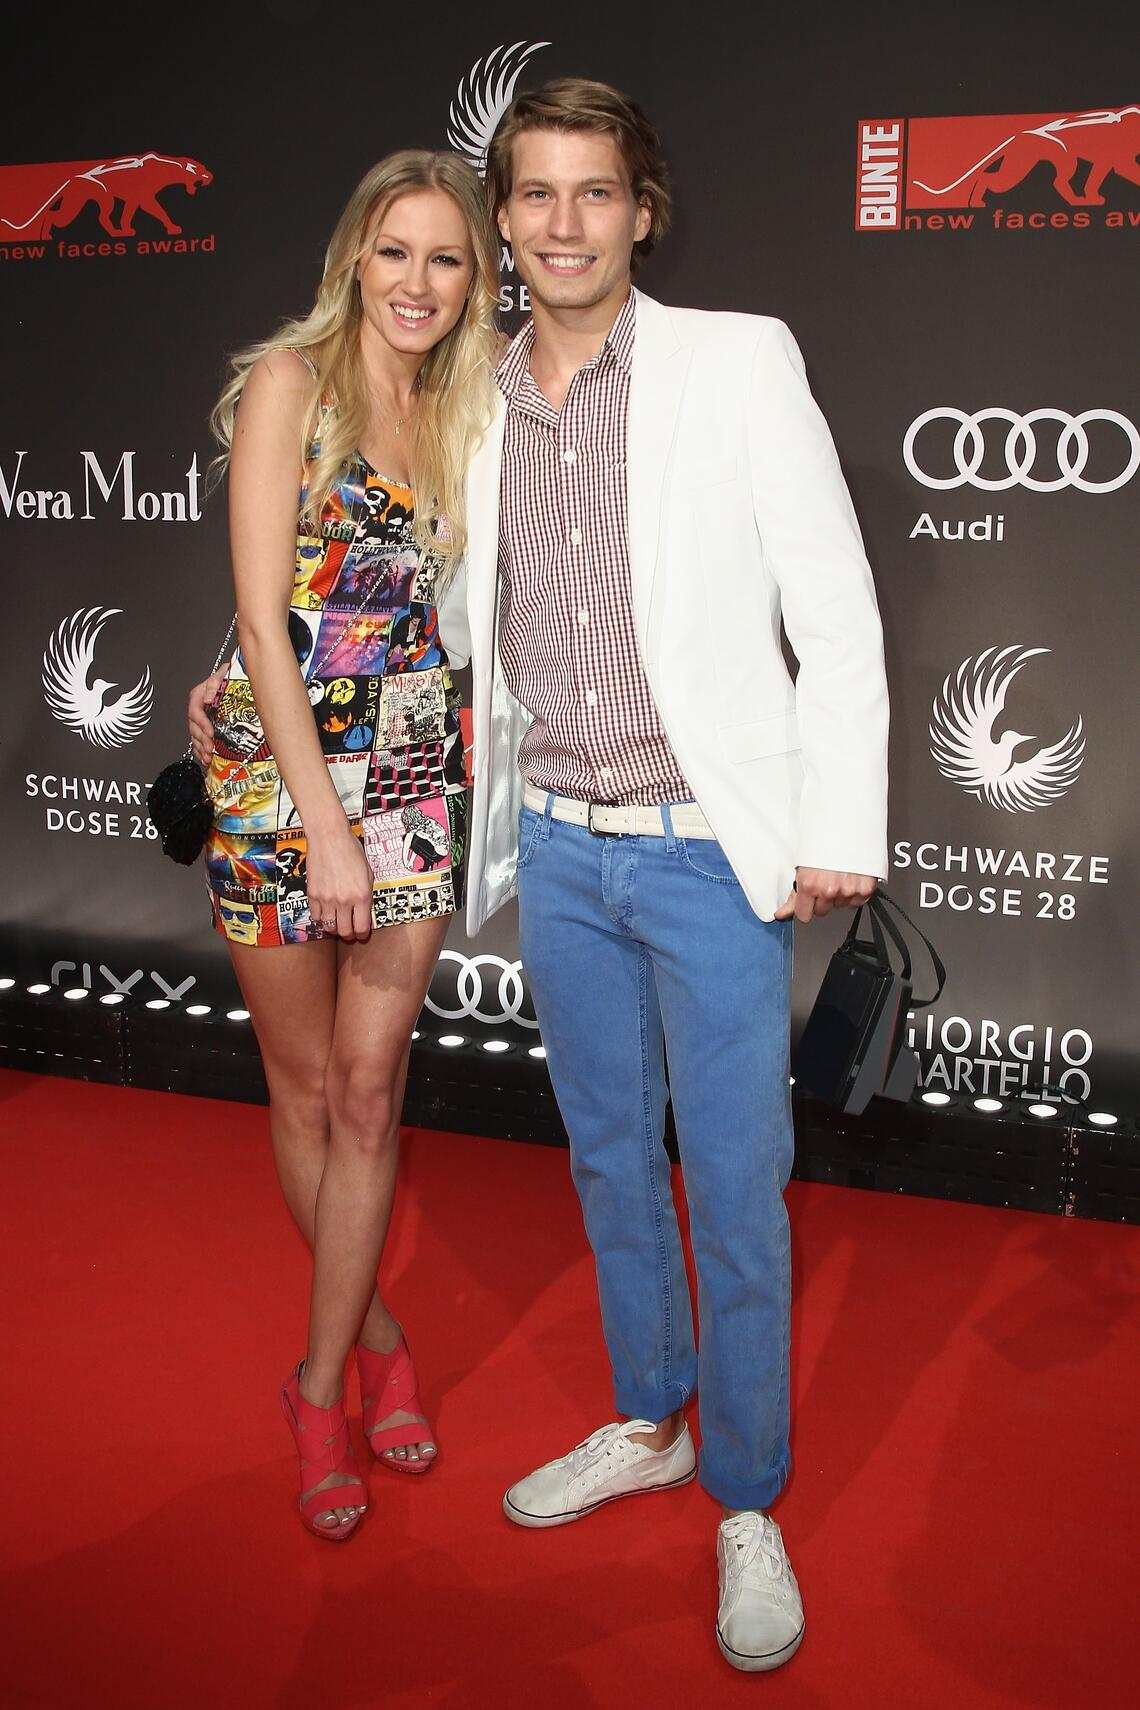 Raúl Richter und seine damalige Freundin Linda Rojewska am «New Face Award» 2011 in Berlin